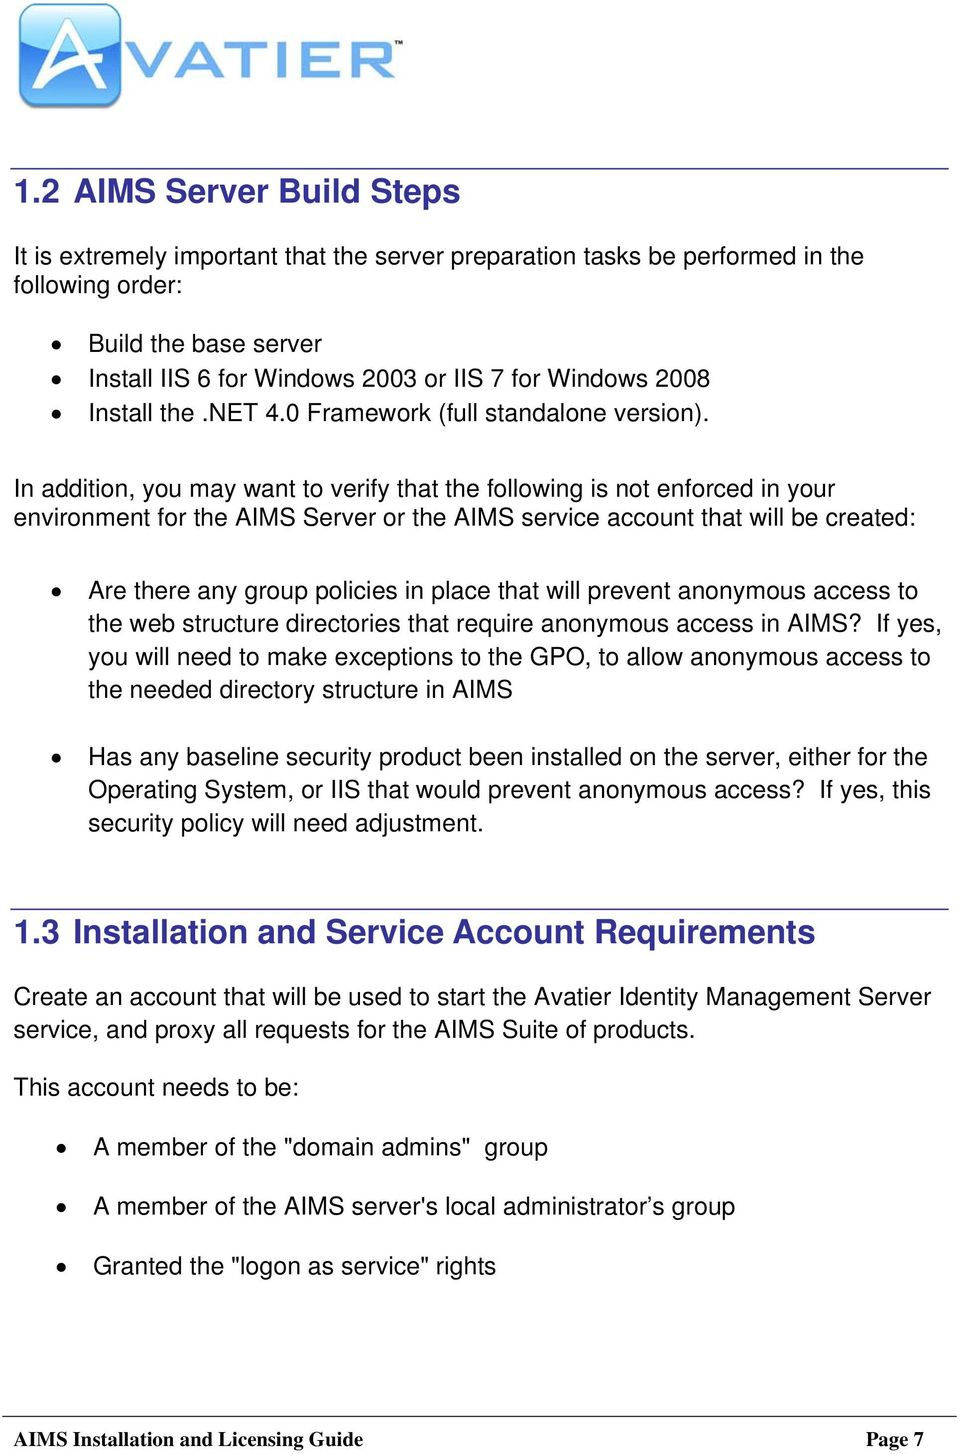 In addition, you may want to verify that the following is not enforced in your environment for the AIMS Server or the AIMS service account that will be created: Are there any group policies in place